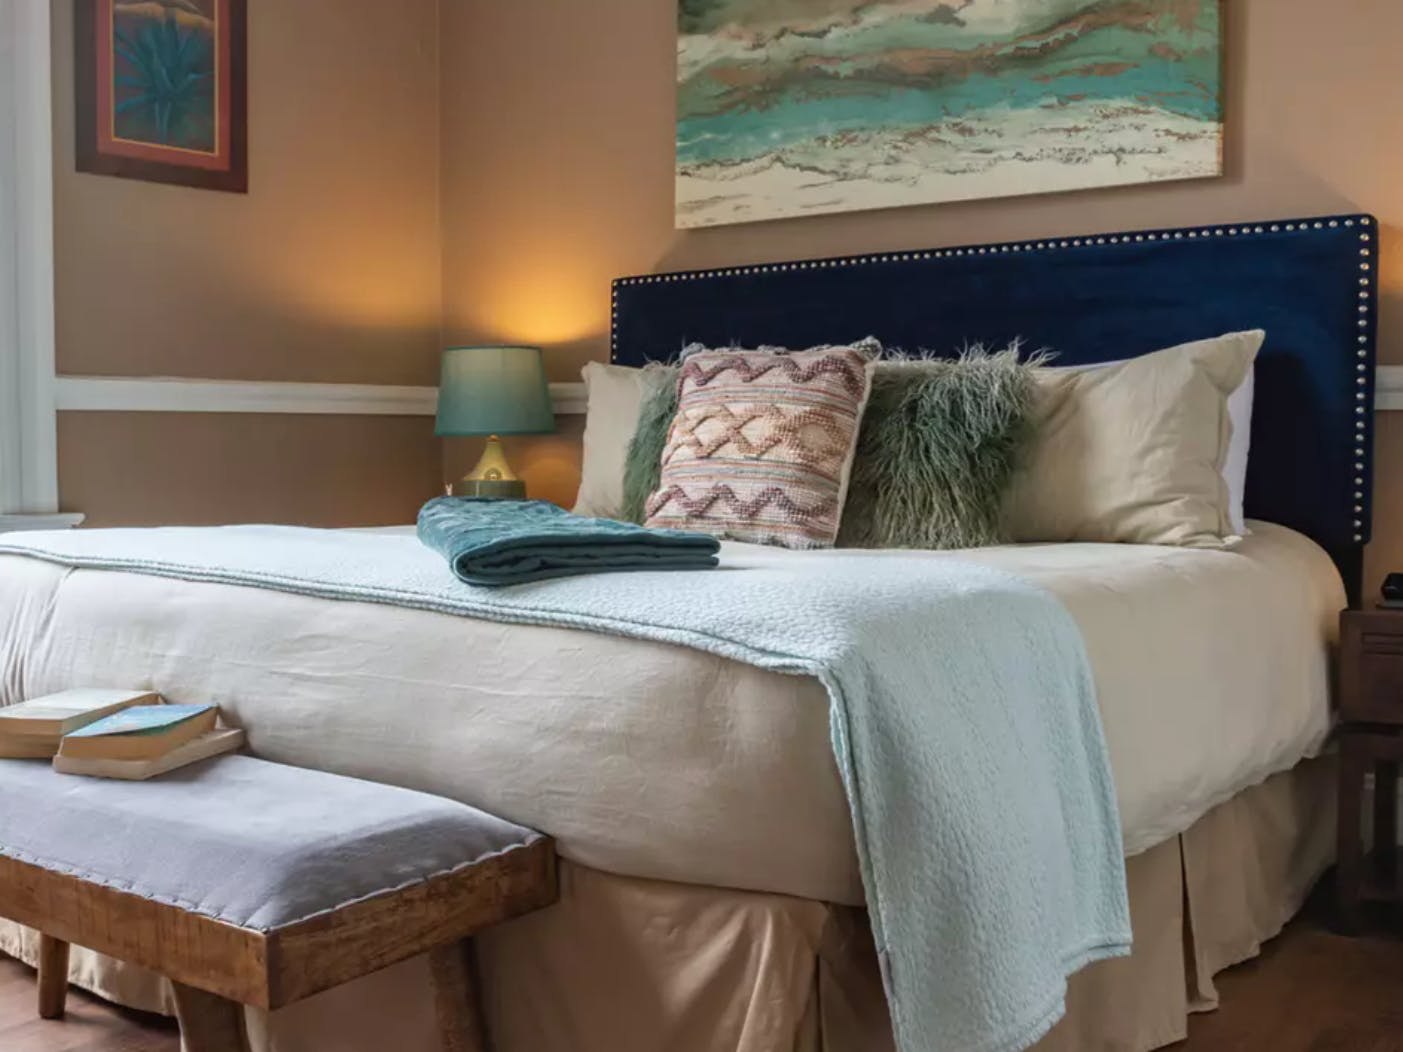 Vacation rental bedroom using hues of blue to accent the room